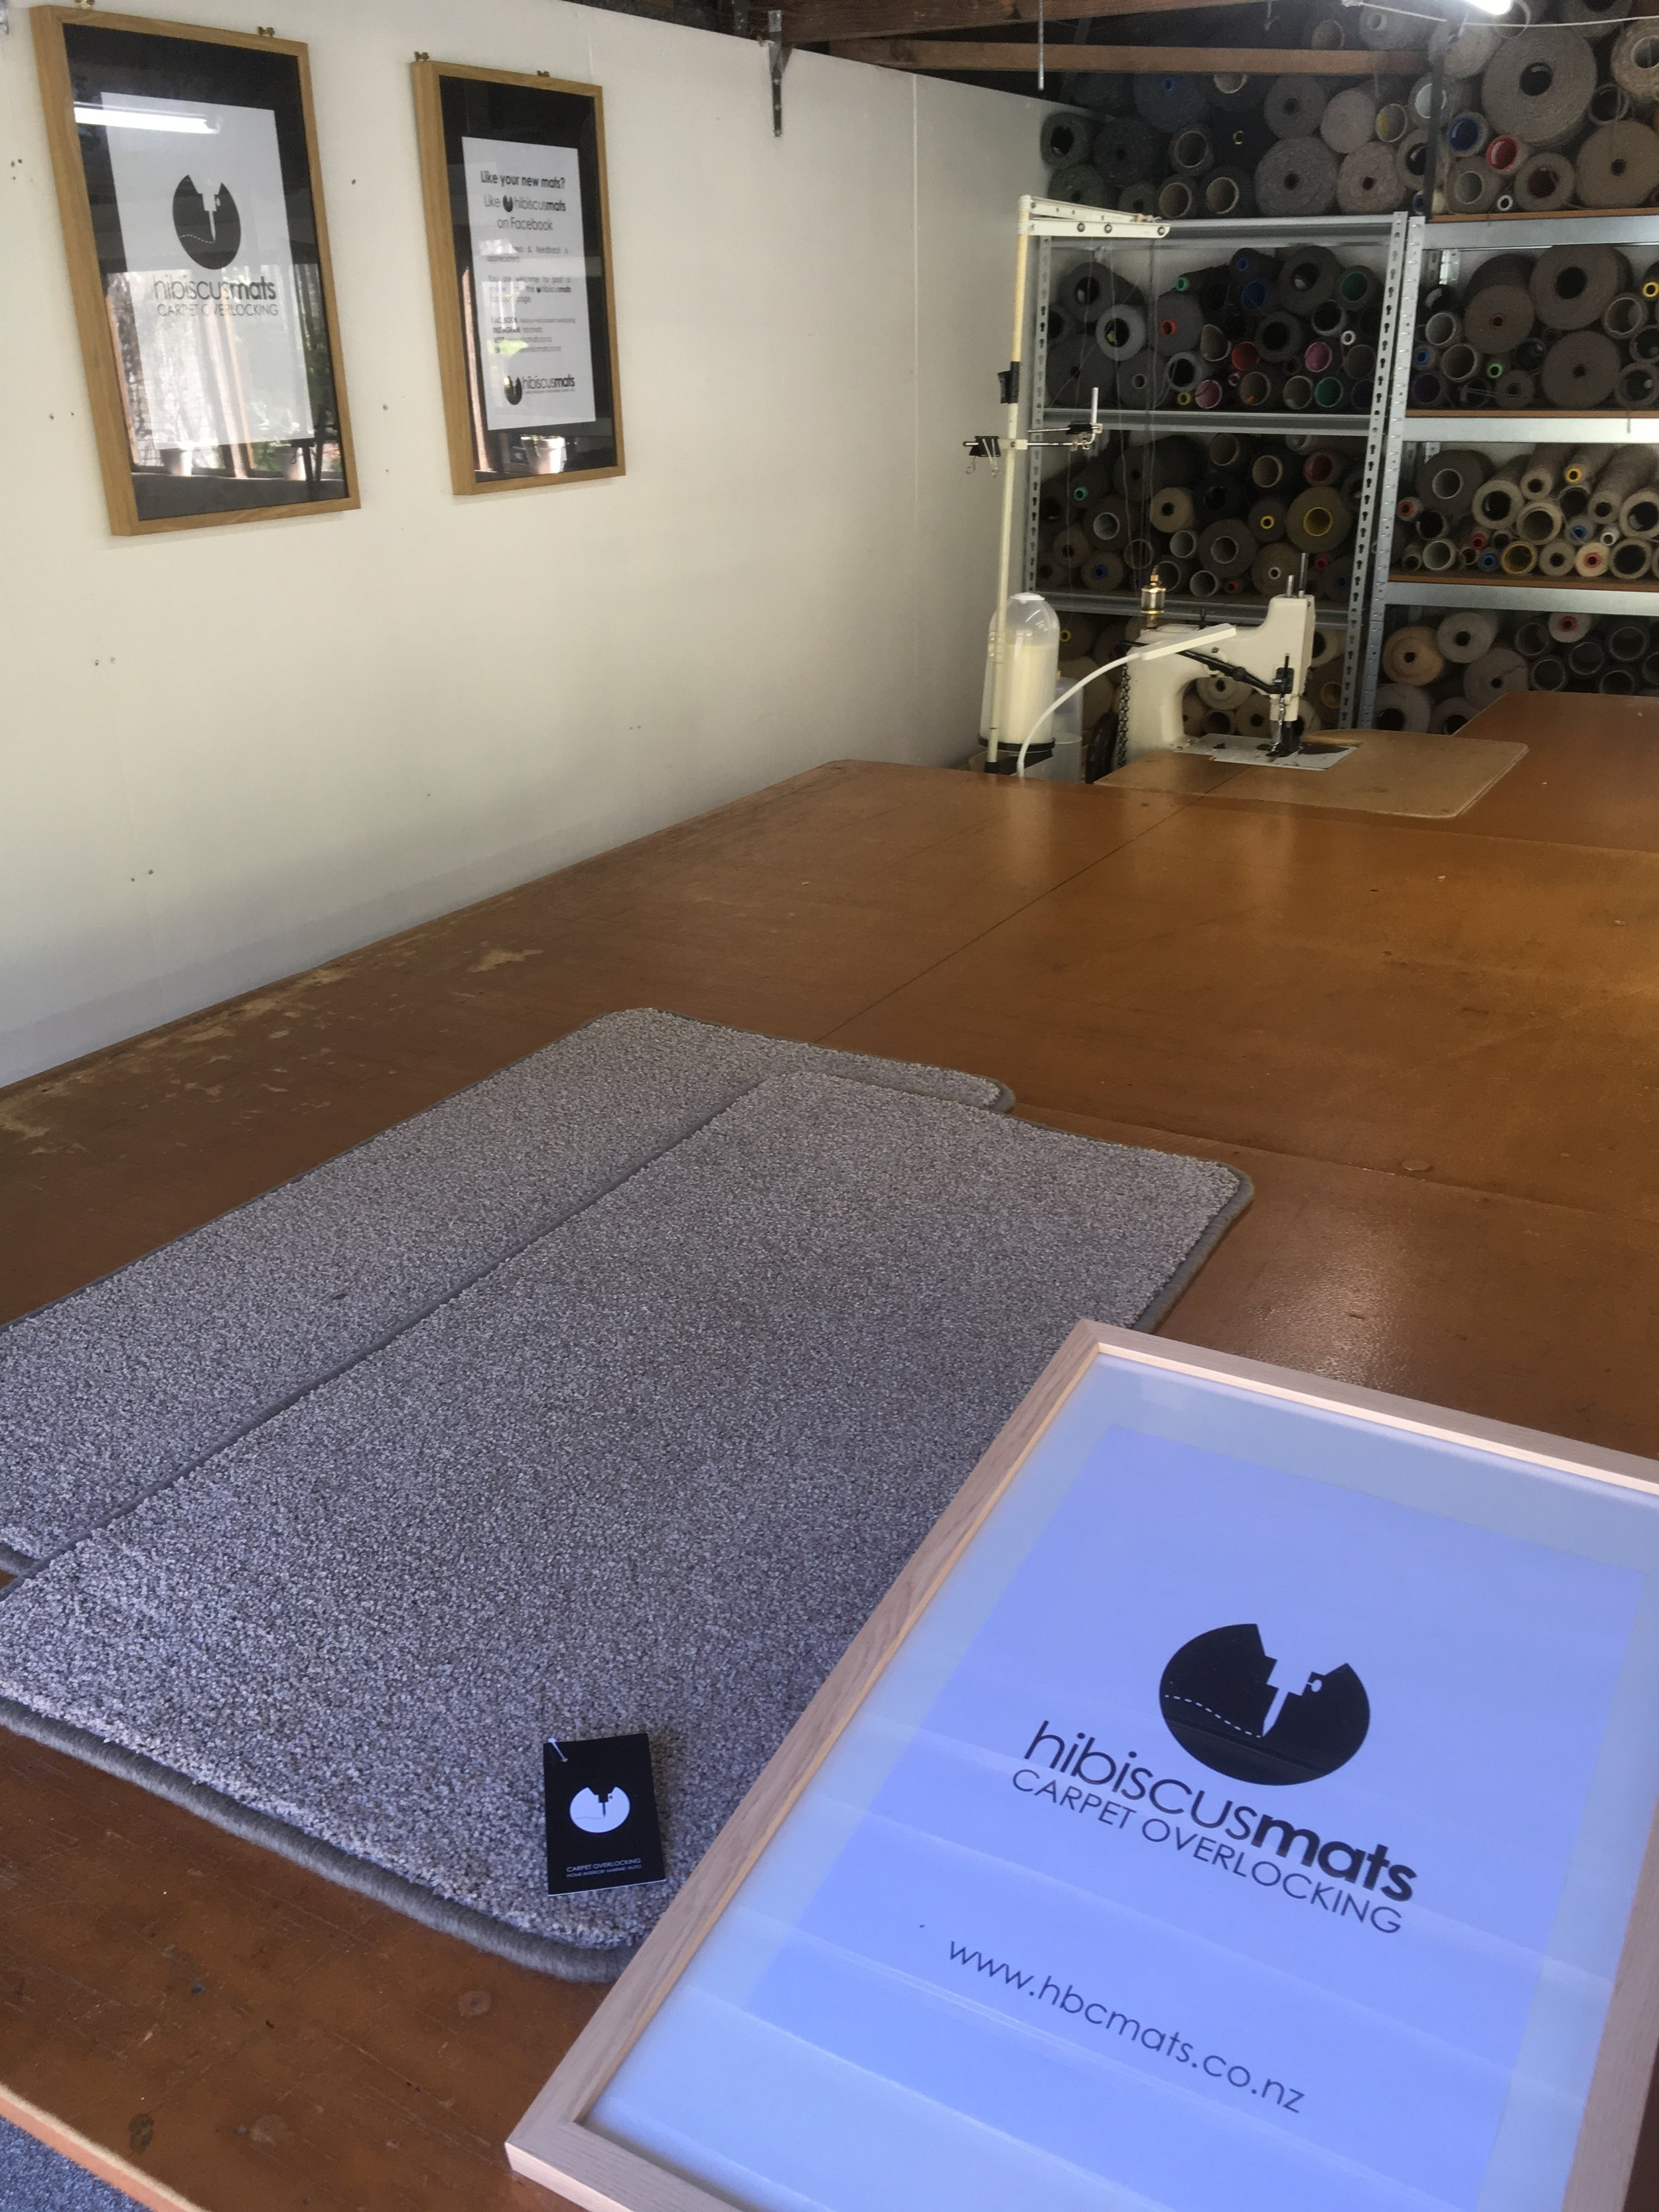 Carpet Mat 1.00m x 0.50m by Hibiscus Mats Carpet Overlocking $25 - - Measures 1.00m x 0.50m- Colour: Taupe- Rounded corners to prevent curling- Can be gripped with Giltgrip Rug Grip for an additional fee